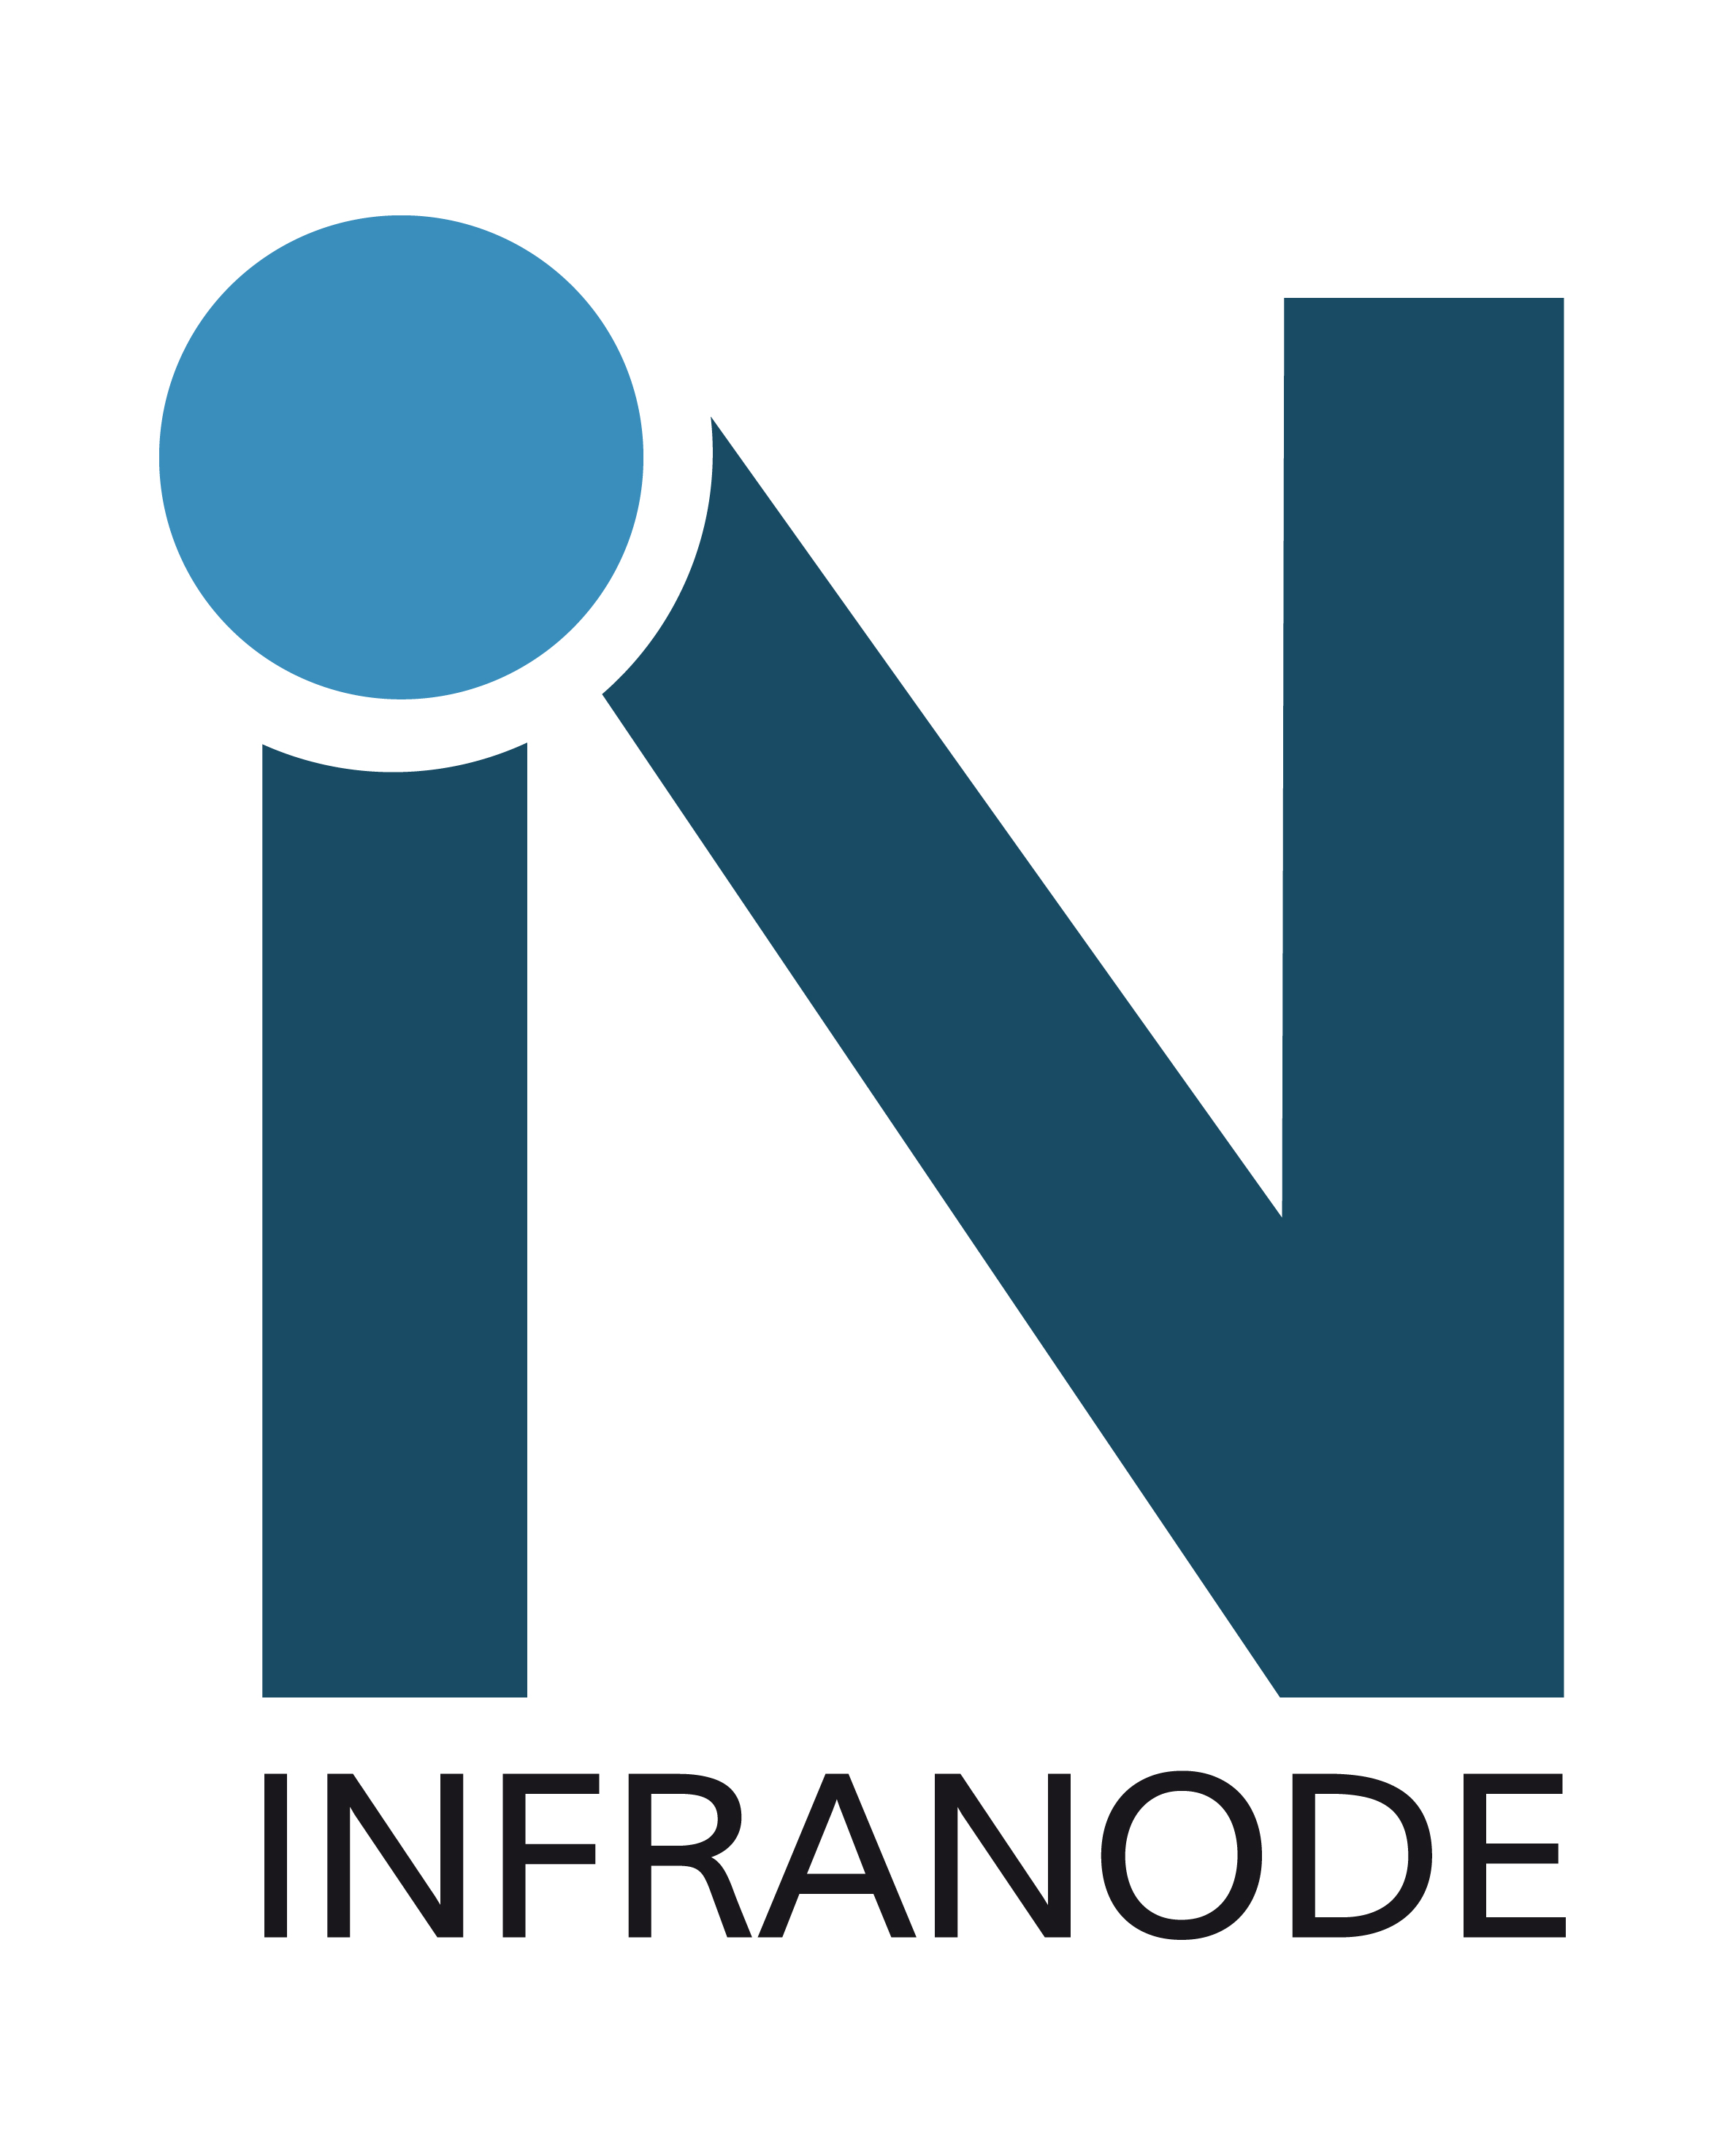 Infranode (Areim Group)